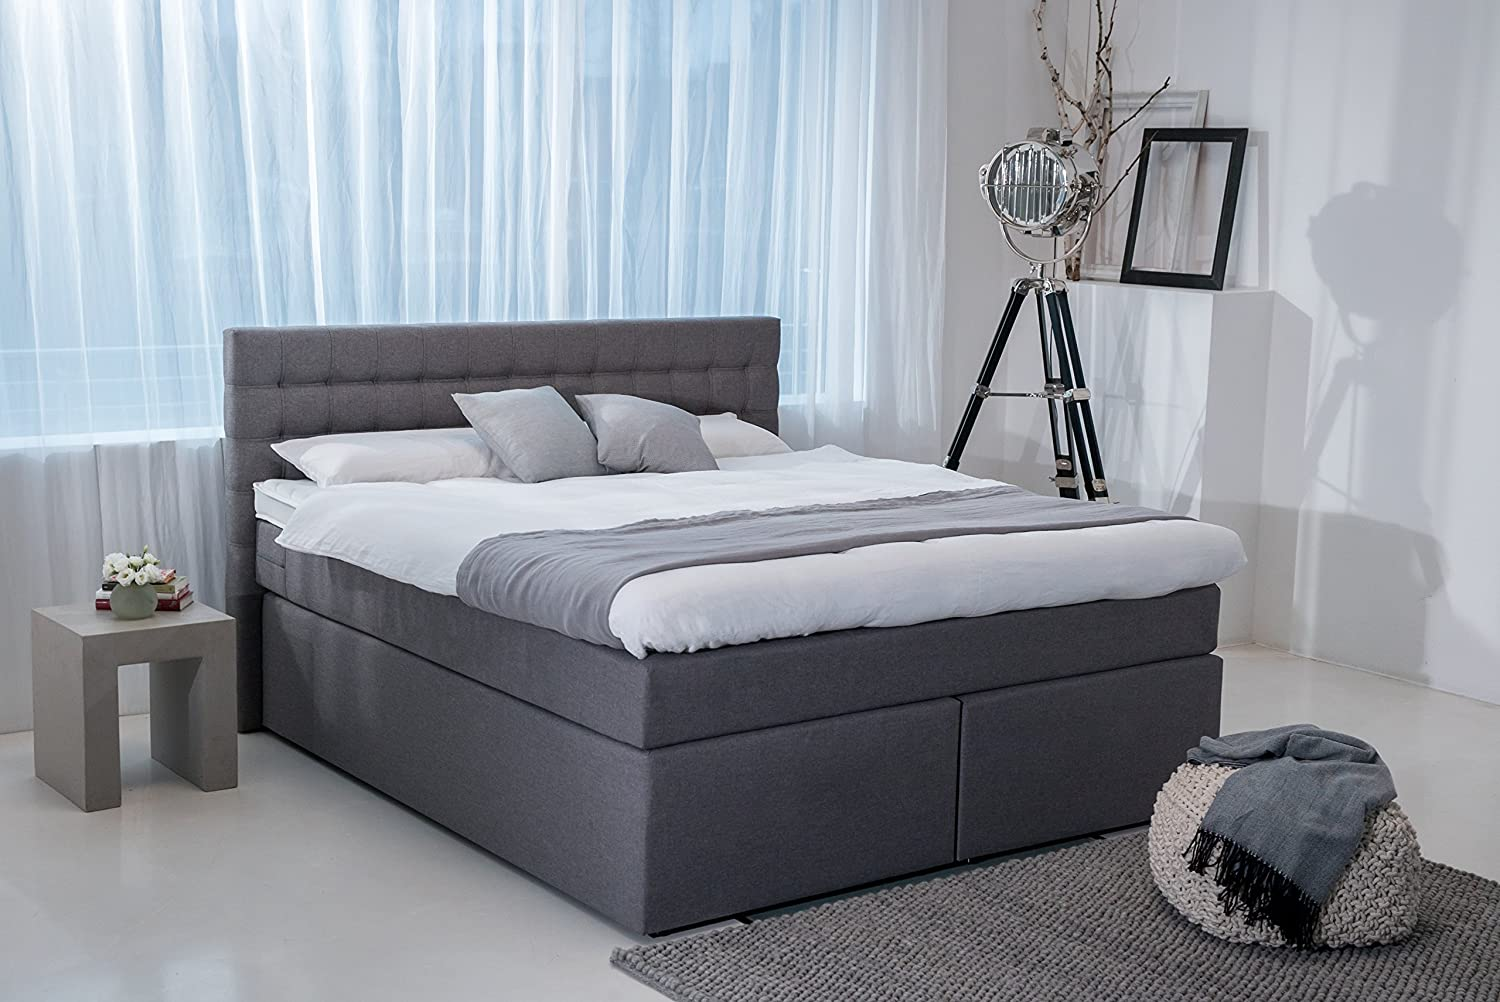 boxspringbett king im test neu 09 2018 testurteil 2 1 gut. Black Bedroom Furniture Sets. Home Design Ideas